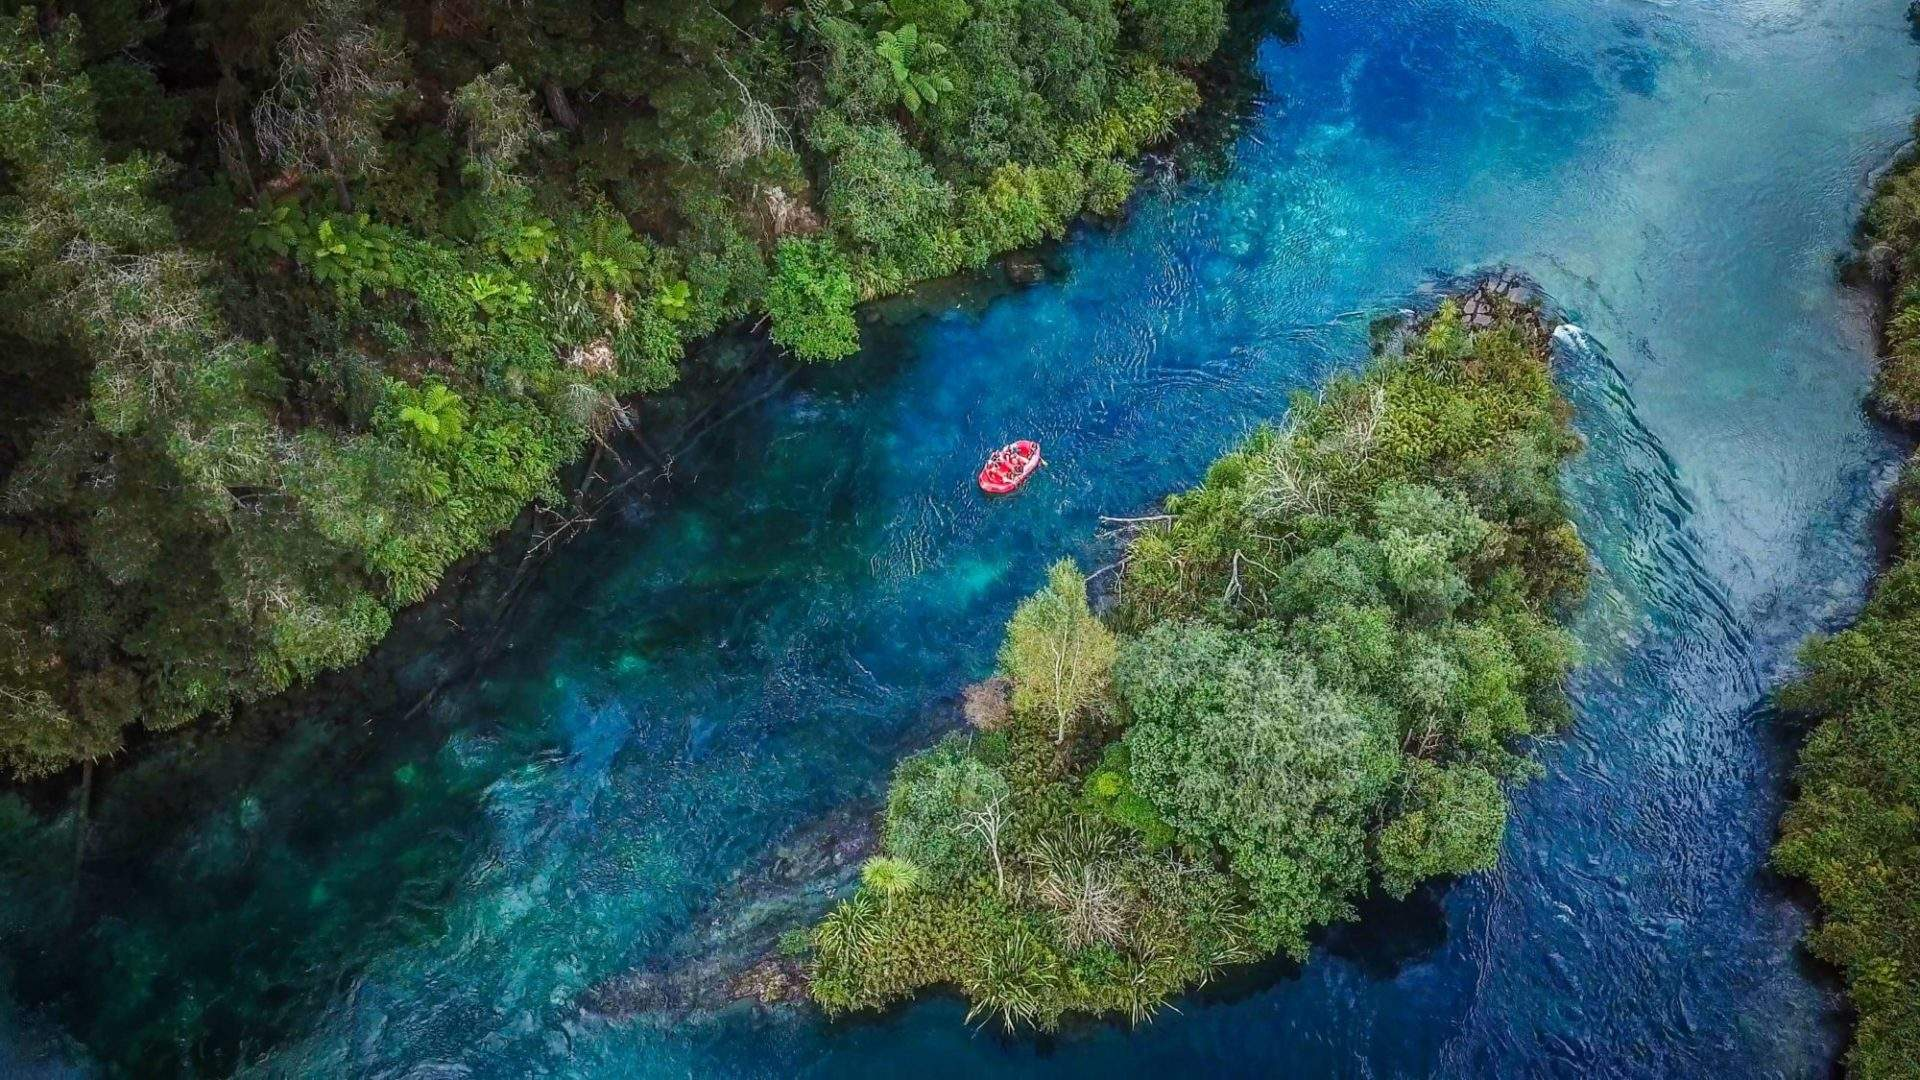 Turangi's White Water Rafting Marries Adventure With Conservation